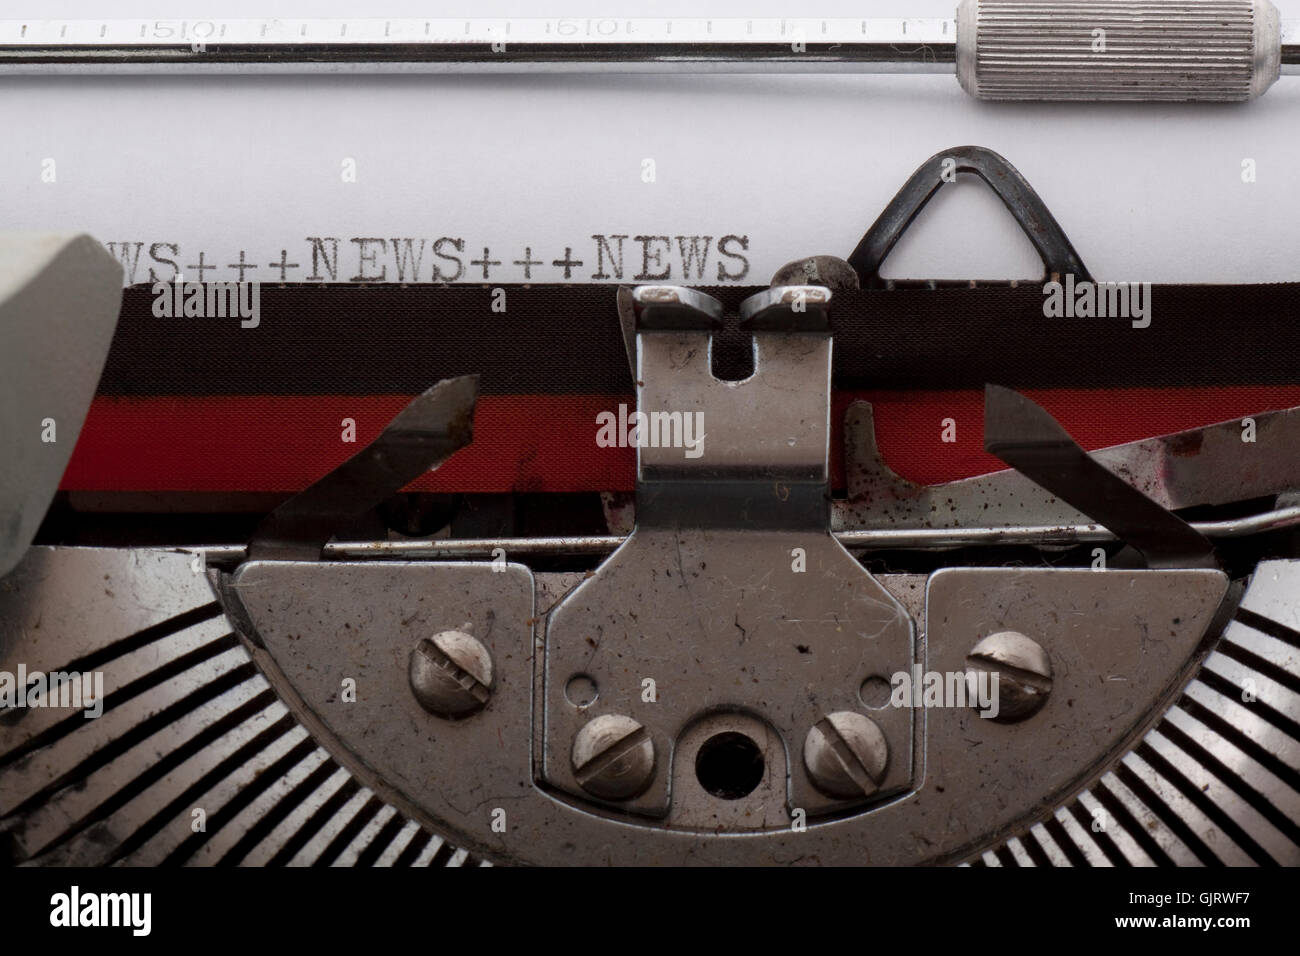 news,headline with typewriter - Stock Image